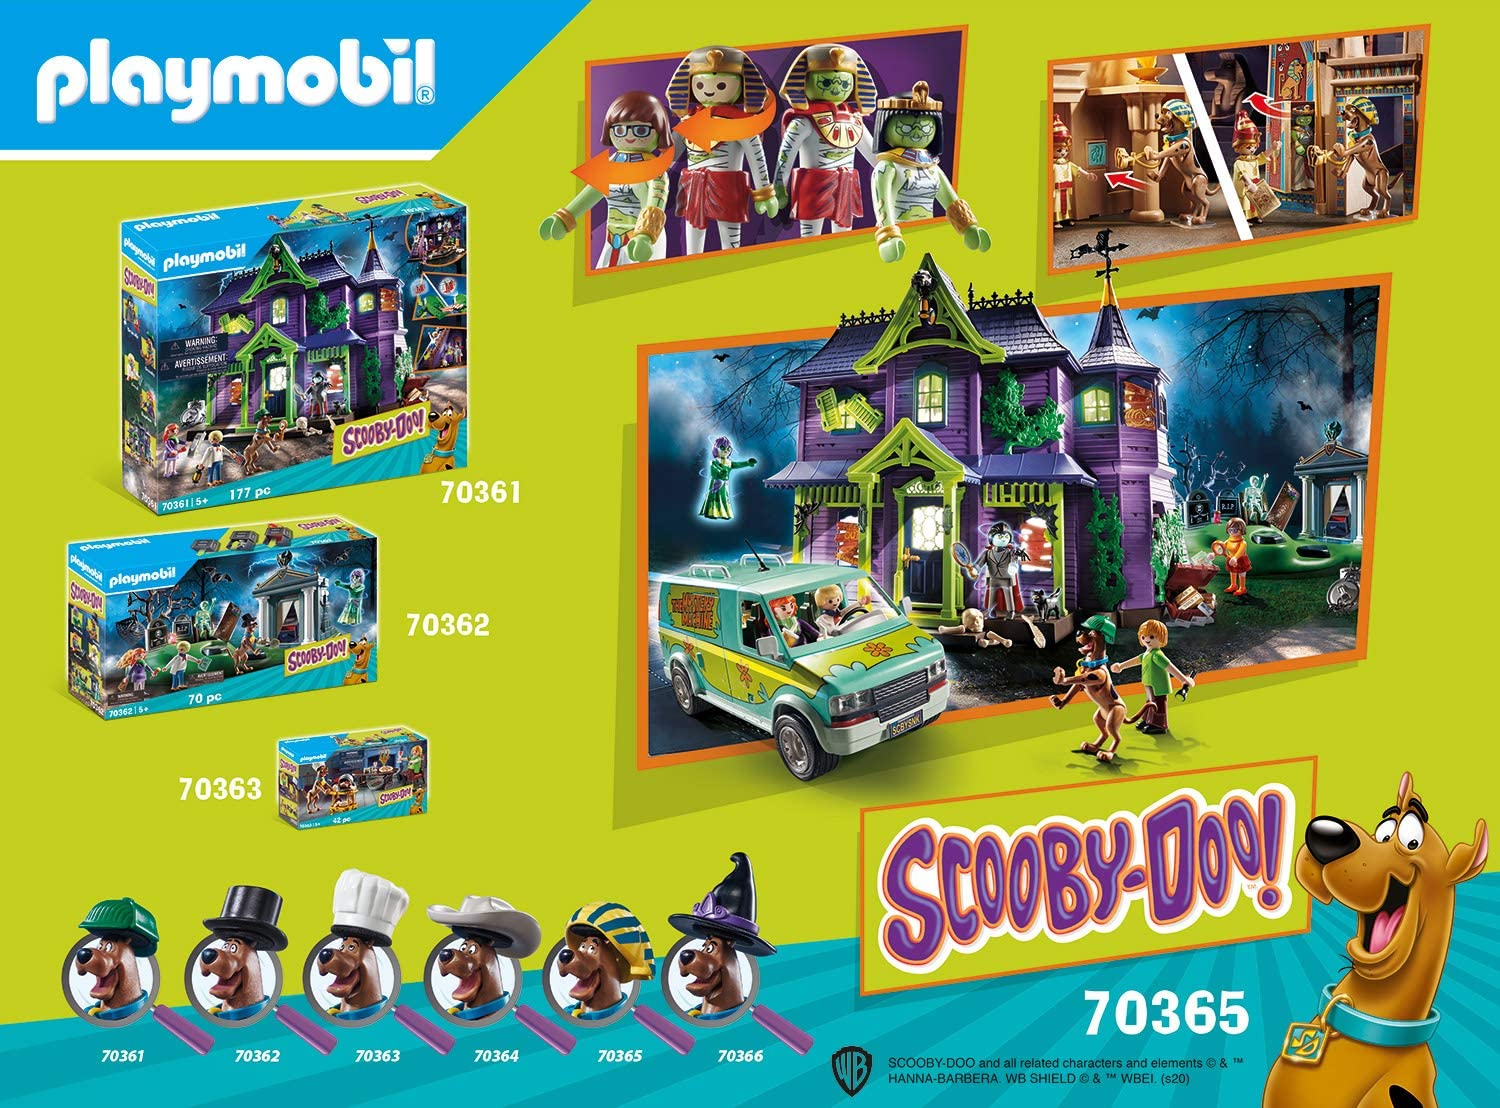 Playmobil Scooby- Doo -  Aventura no Egito Playset 70365